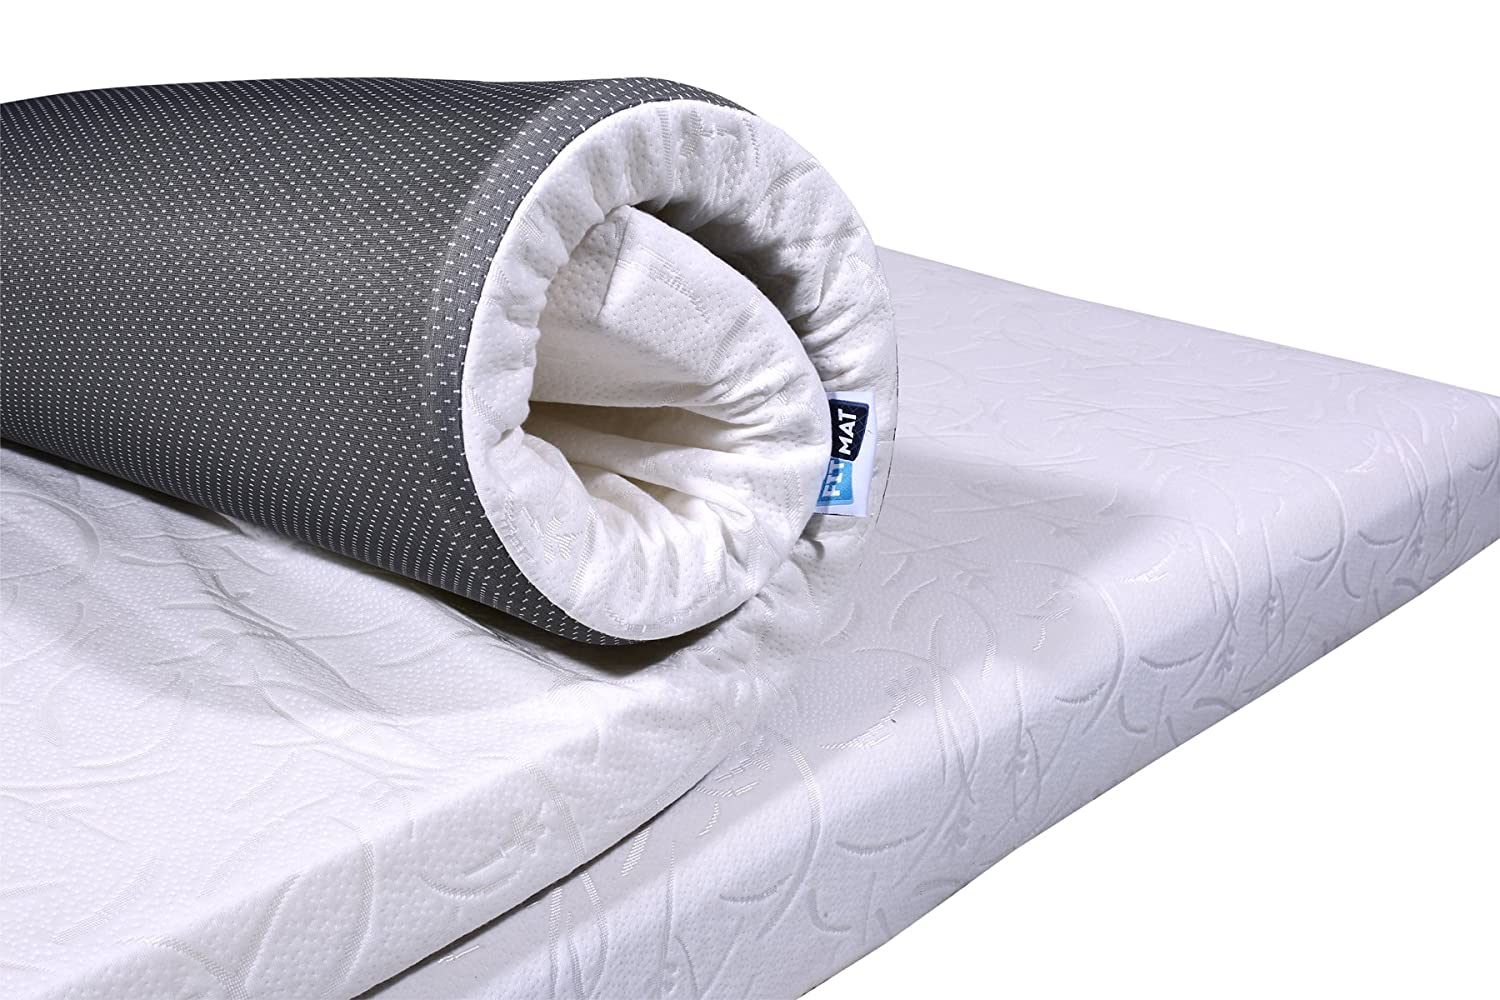 FITMAT Memory Foam Mattress Topper with Cover for Back Pain